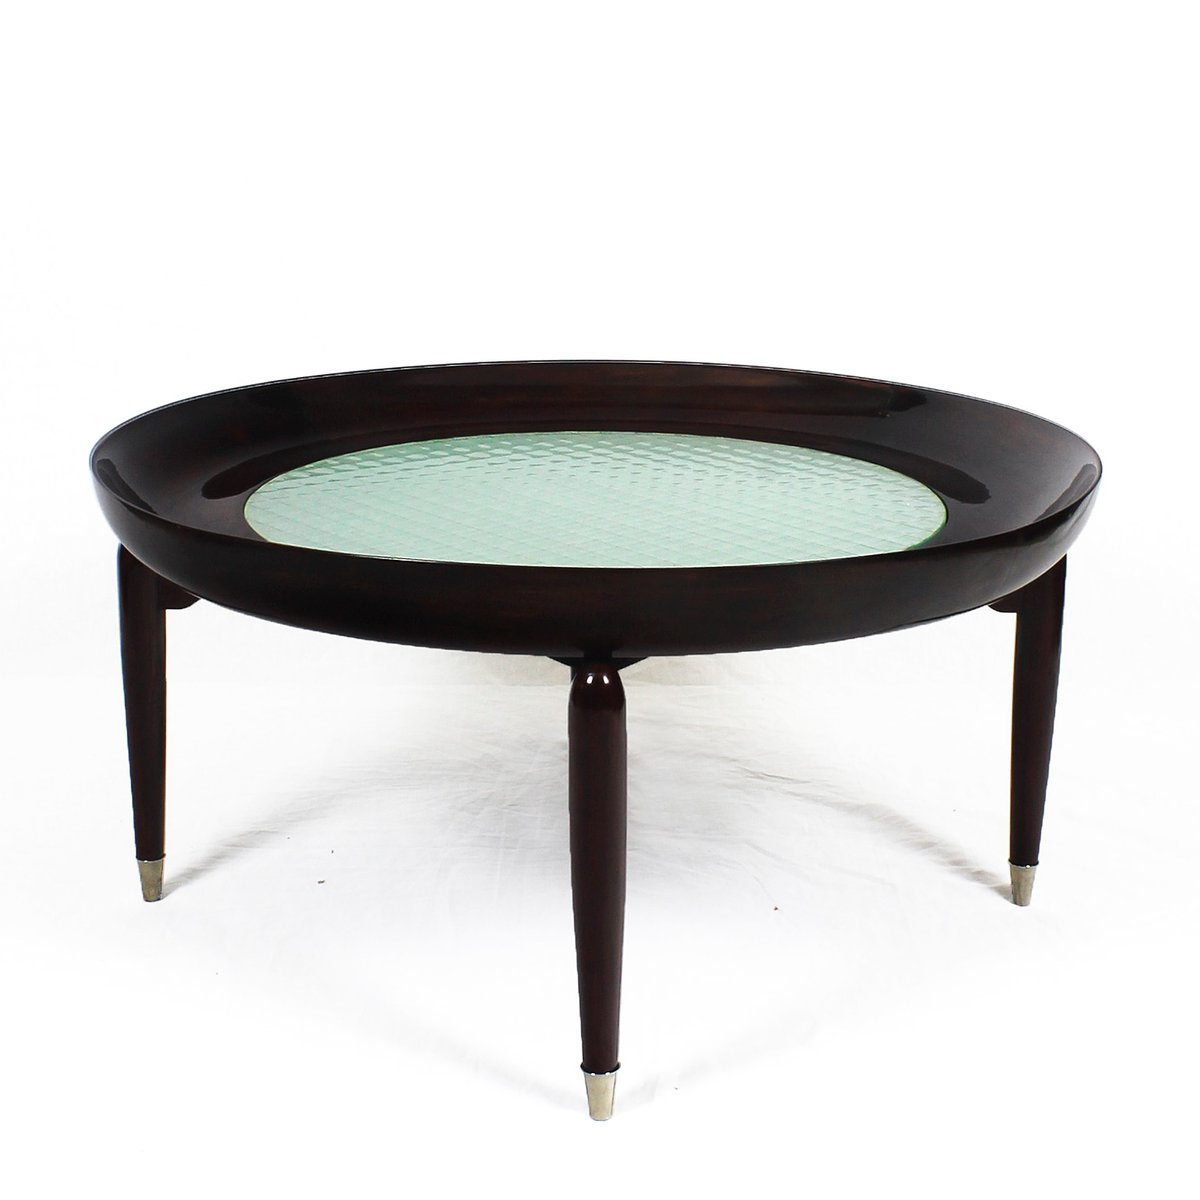 Round coffee table 1940s for sale at pamono for Round coffee tables for sale